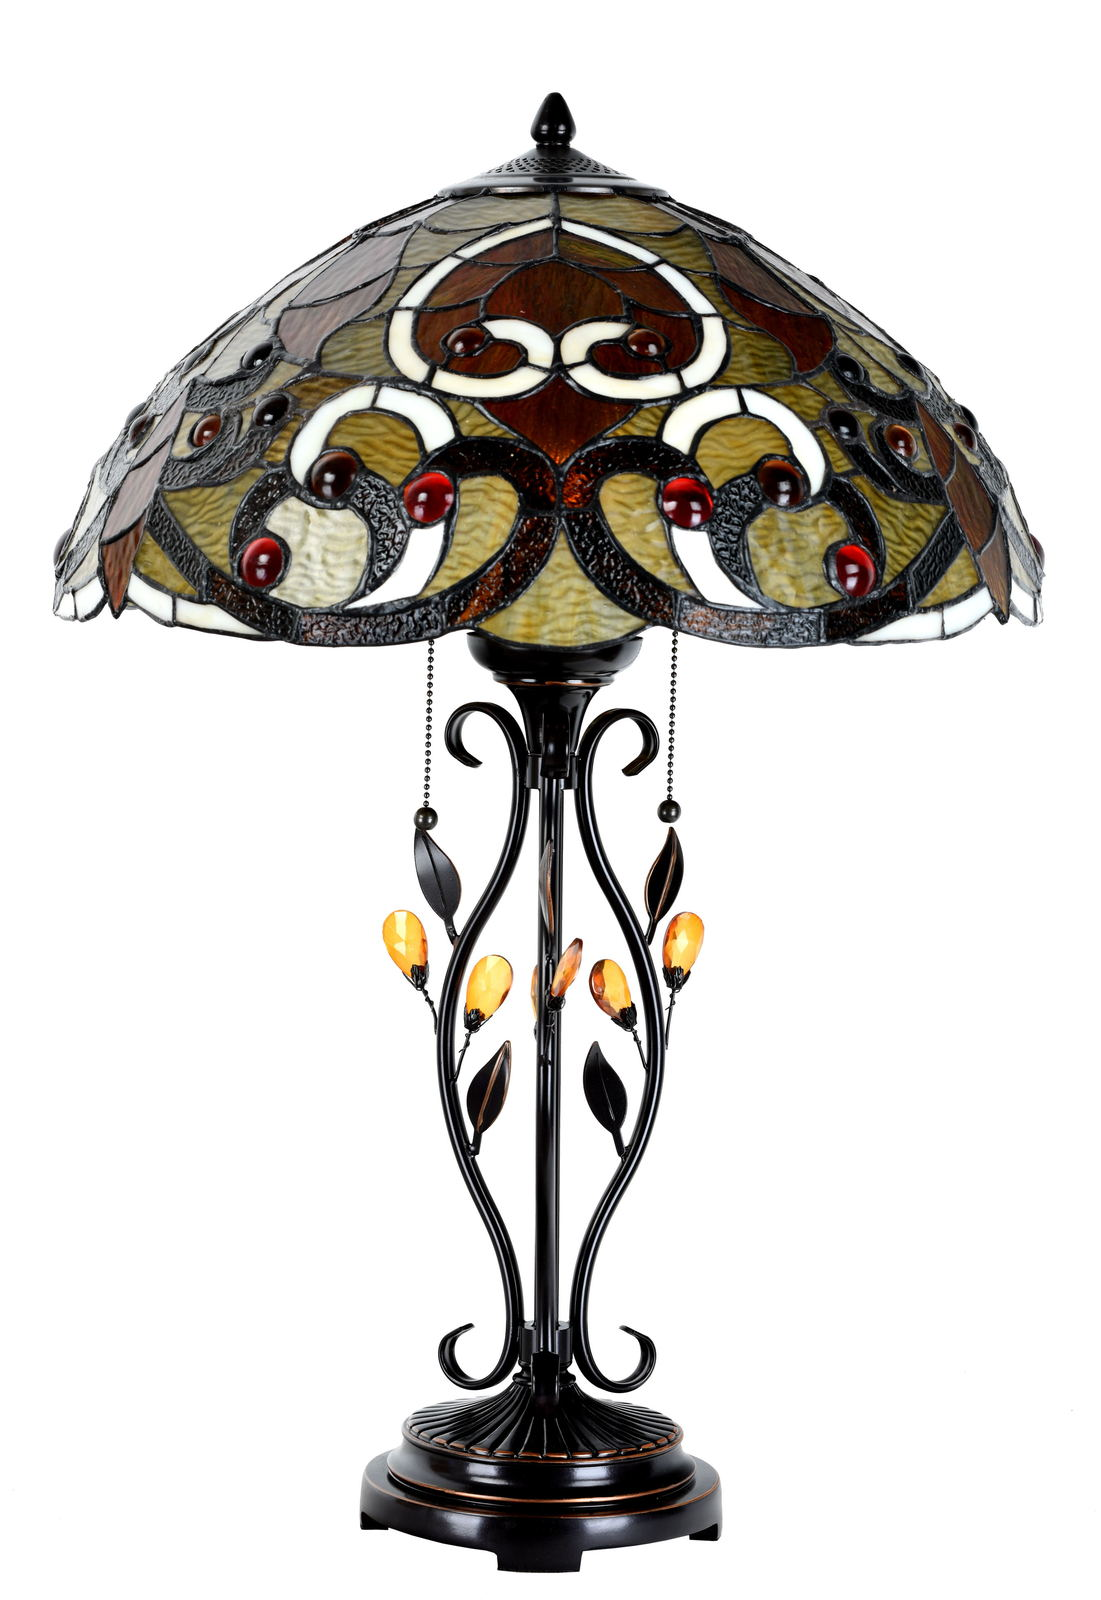 Tiffany Style Table Lamp Victorian Stained Glass Home Décor Desk Lamp